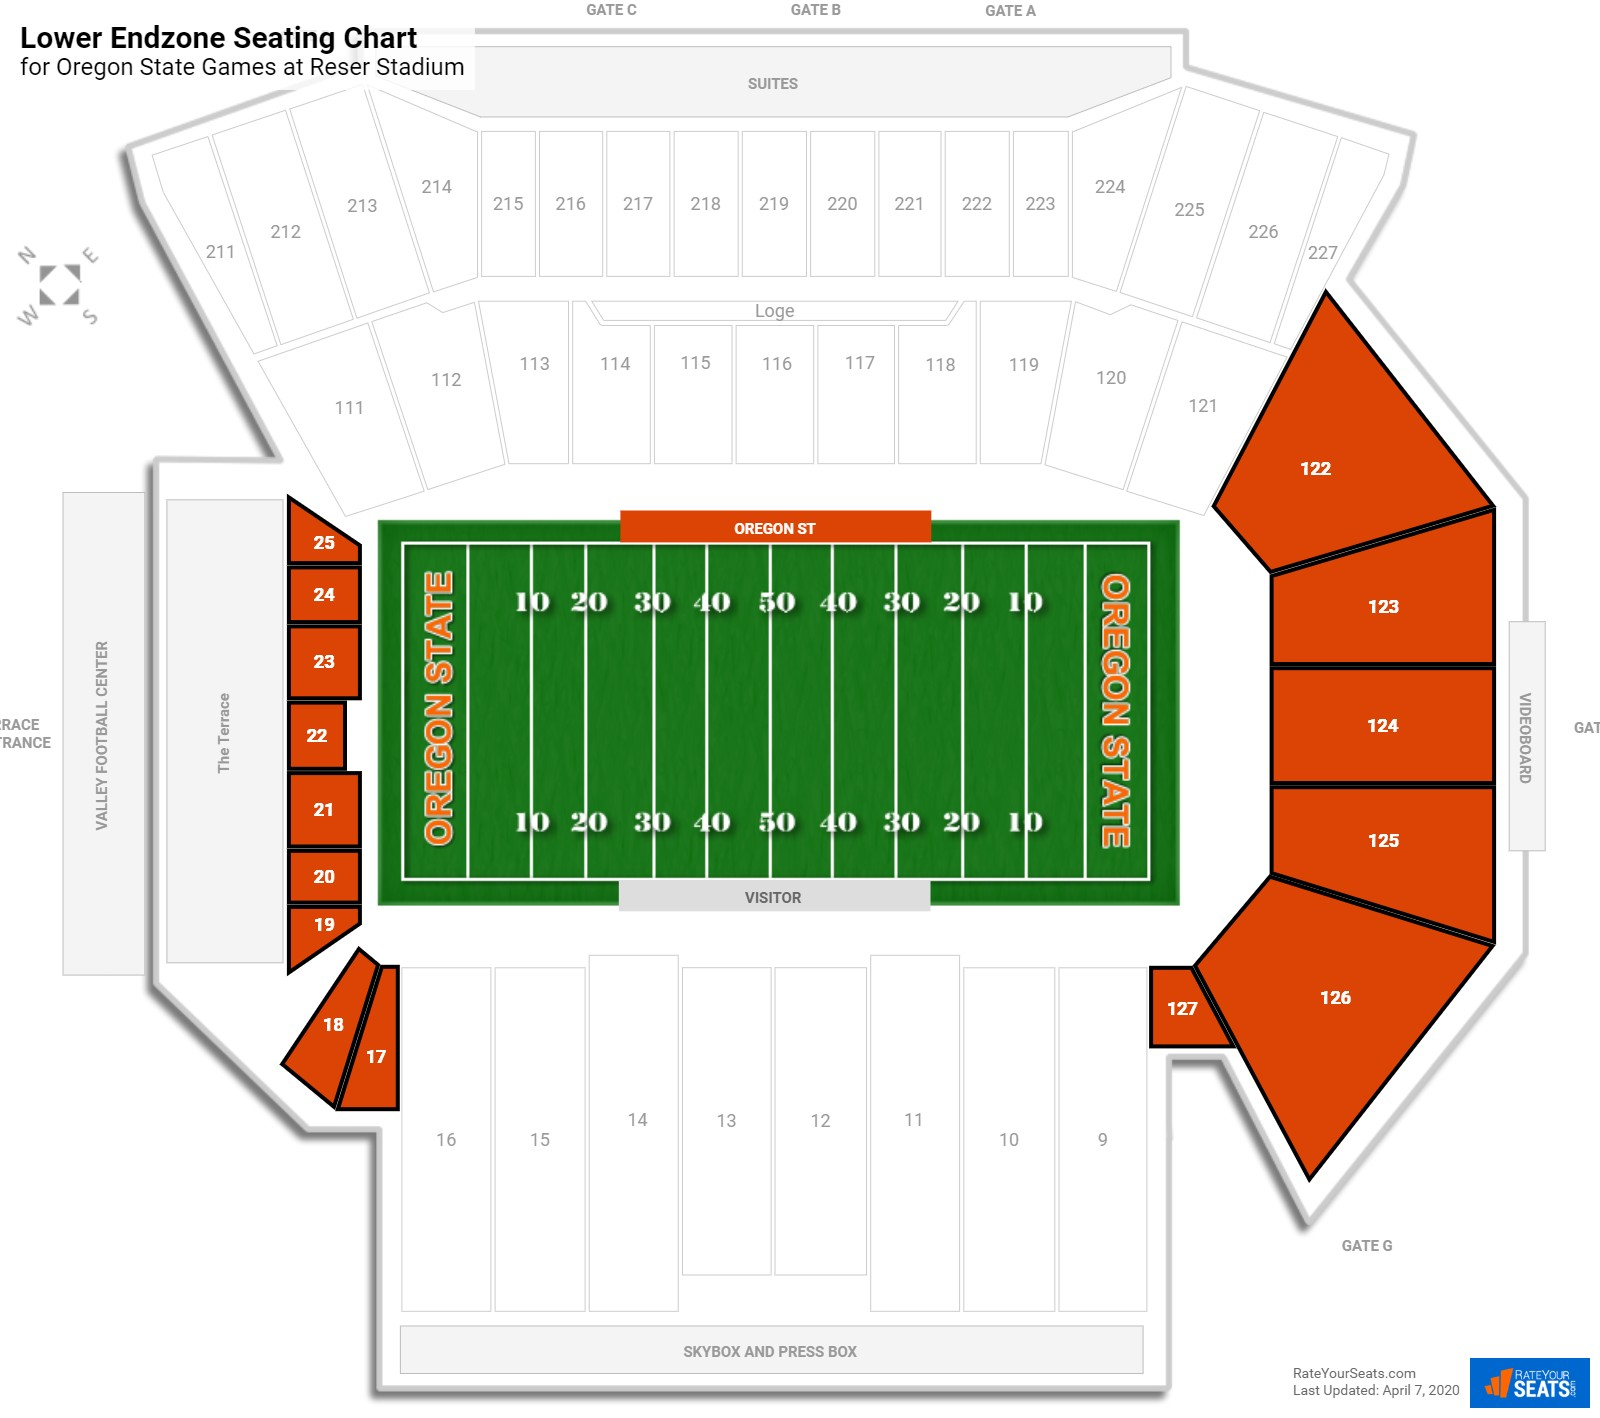 Reser Stadium Lower Endzone seating chart